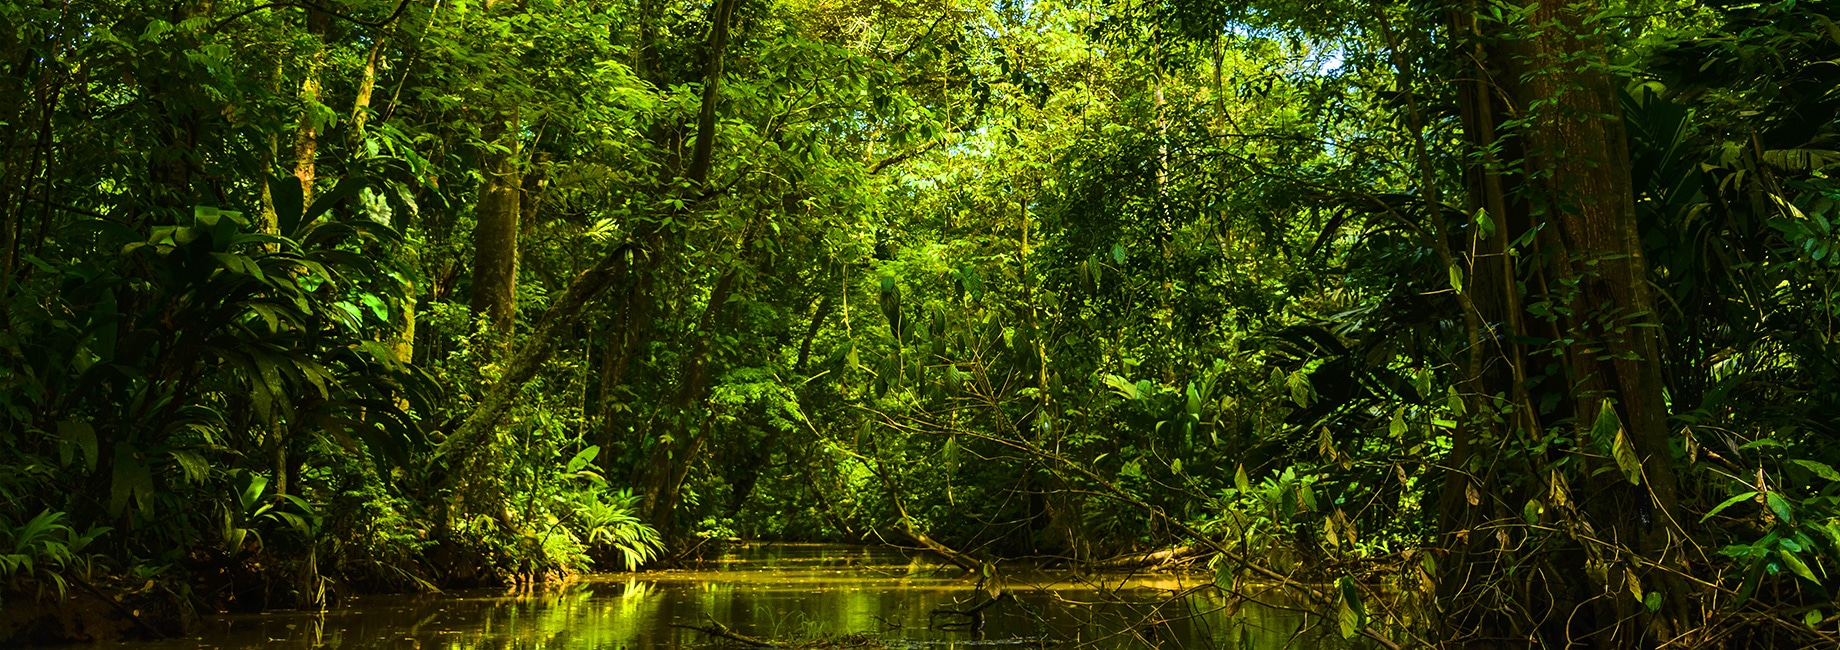 Tortuguero-and-Costa Rica-getting-ready-for-your-visit